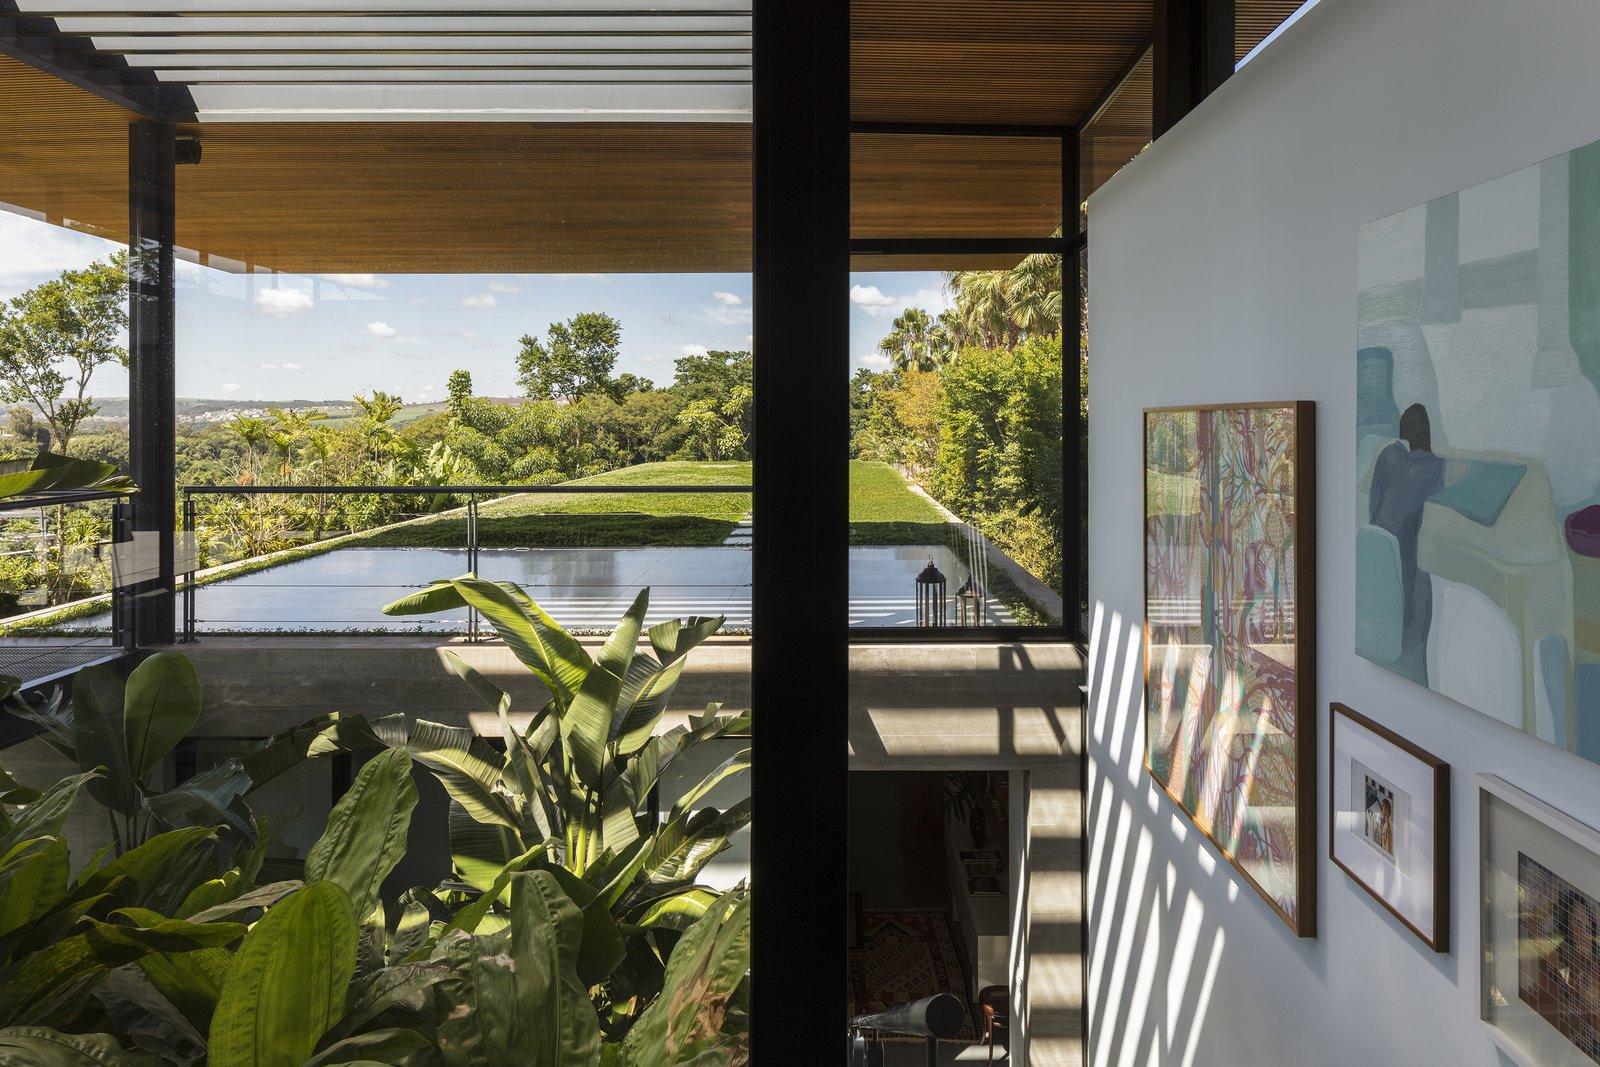 Staircase Picturesque views of the surrounding countryside are eminent at every corner of this home. Large openings fully embrace the surroundings.   Photo 10 of 12 in A Green Roof Helps Camouflage This Striking Home in Brazil